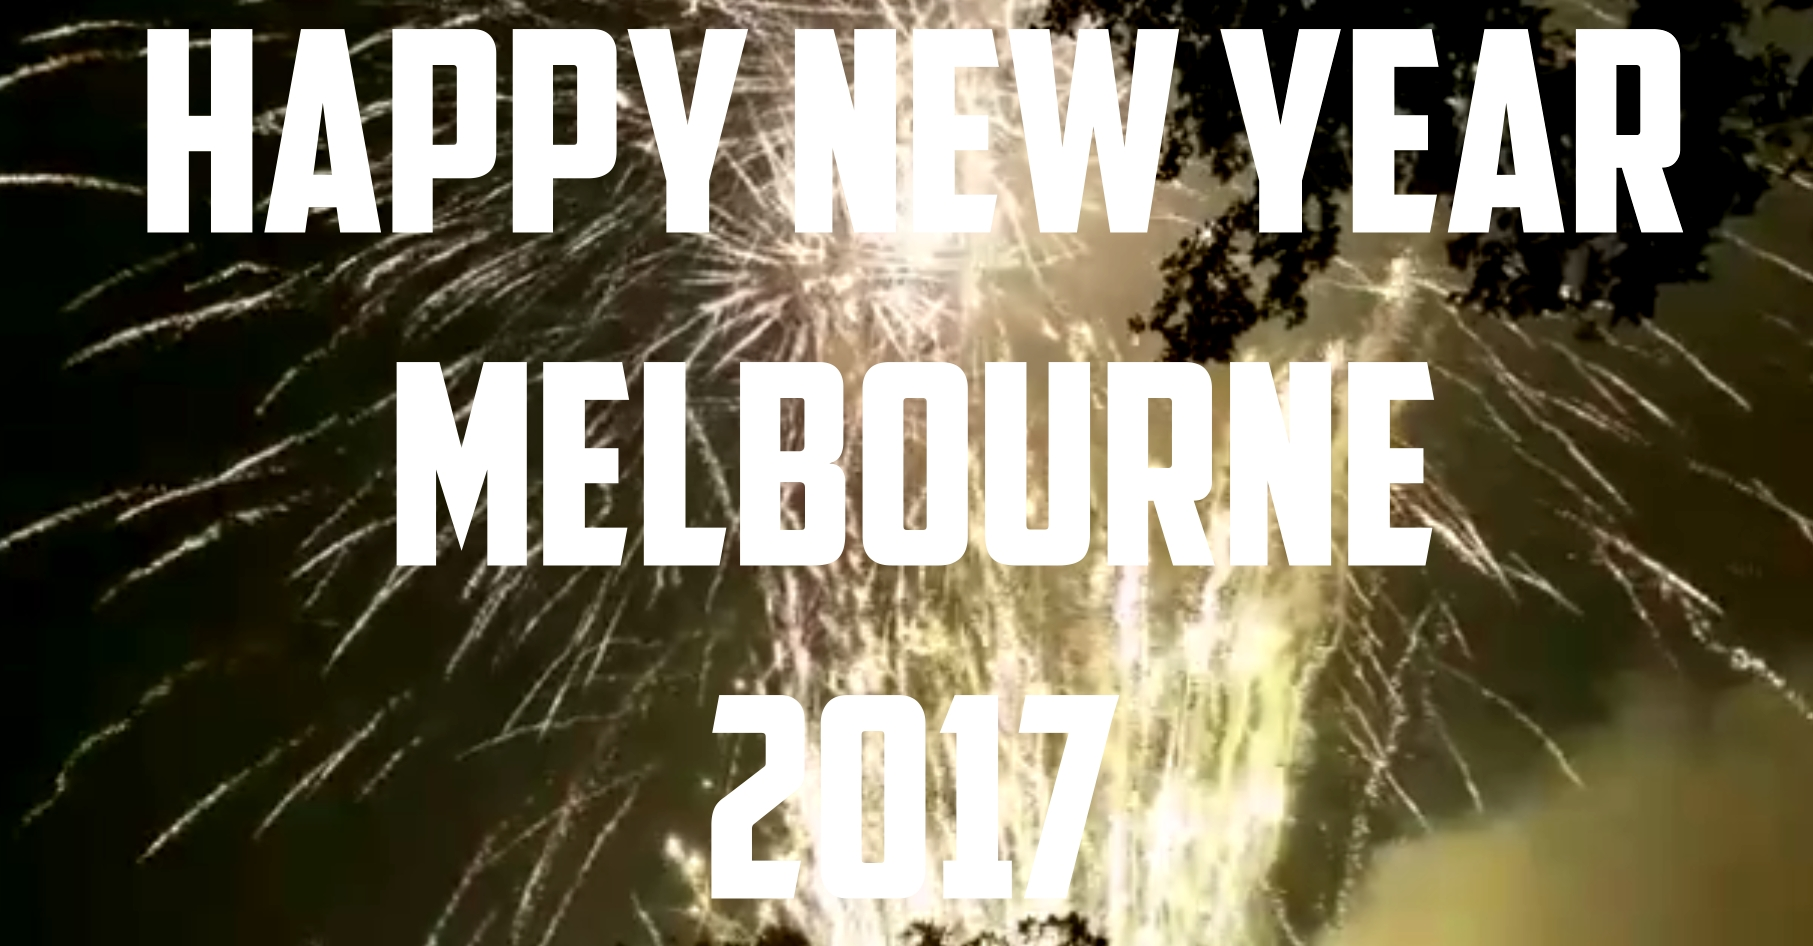 melbourne fireworks 2017 from flagstaff gardens melbourne victoria australia video happy new year 2017 travel wine food